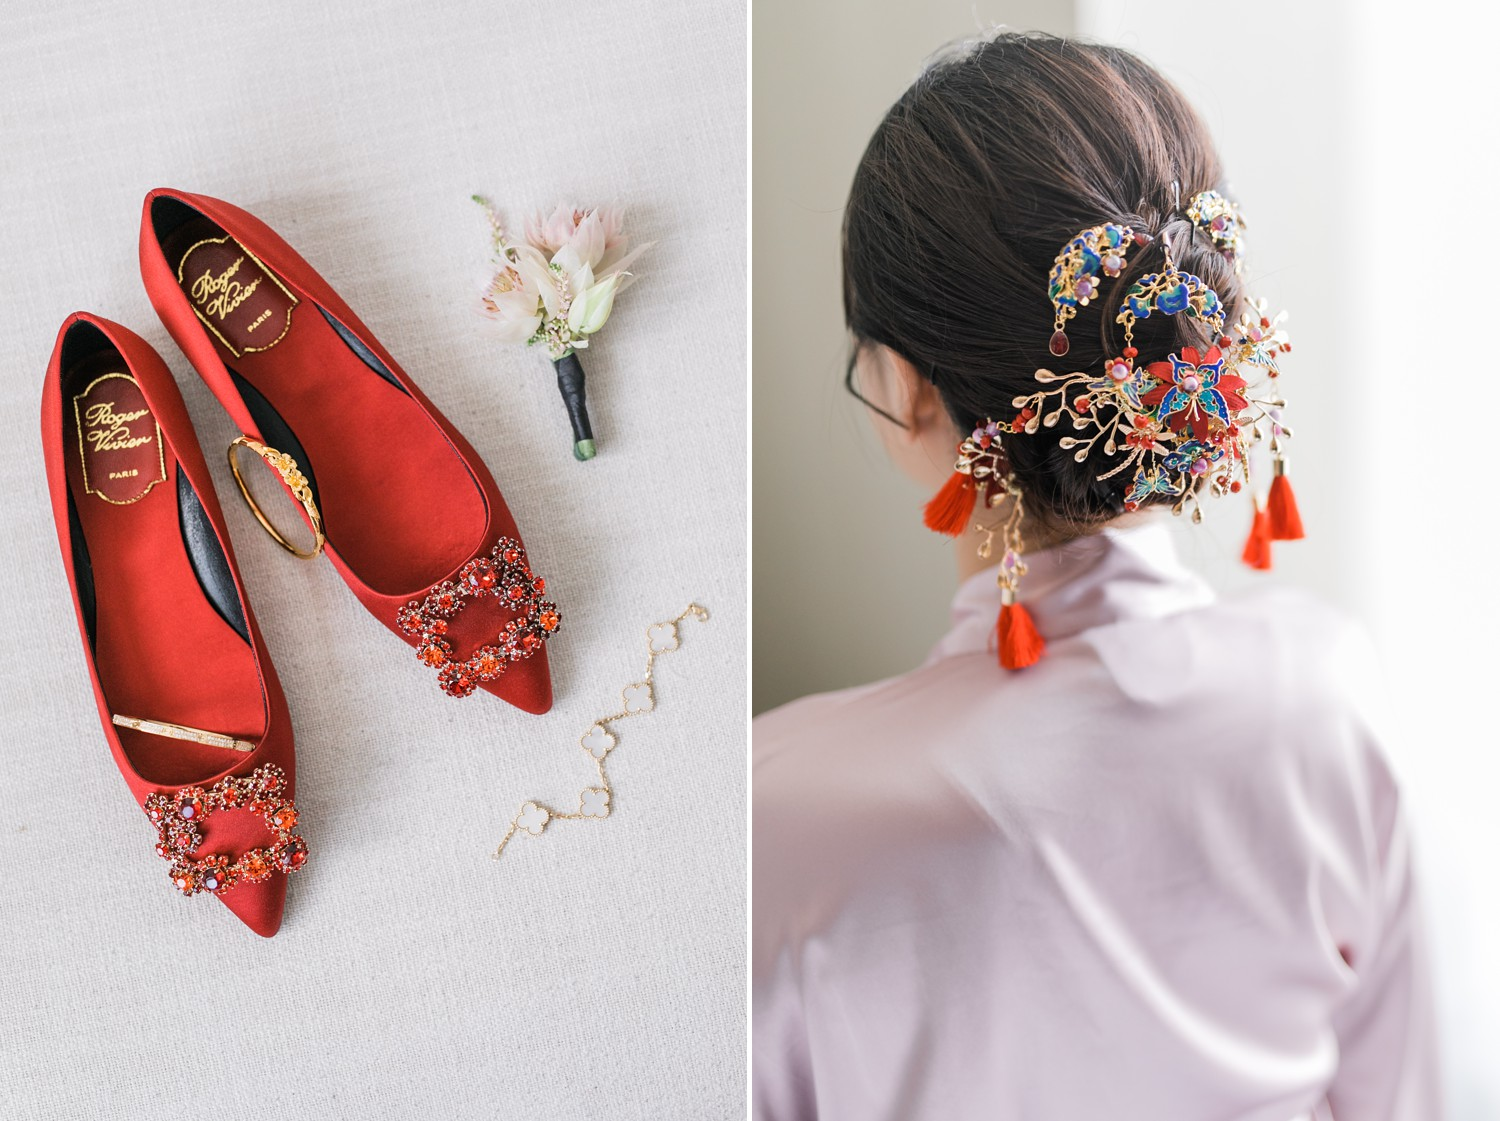 Roger Vivier Red Flats and Van Cleef Bracelet Luxury Yorkville Vinci Toronto Four Season Wedding Photos with Chinese Bride and Groom